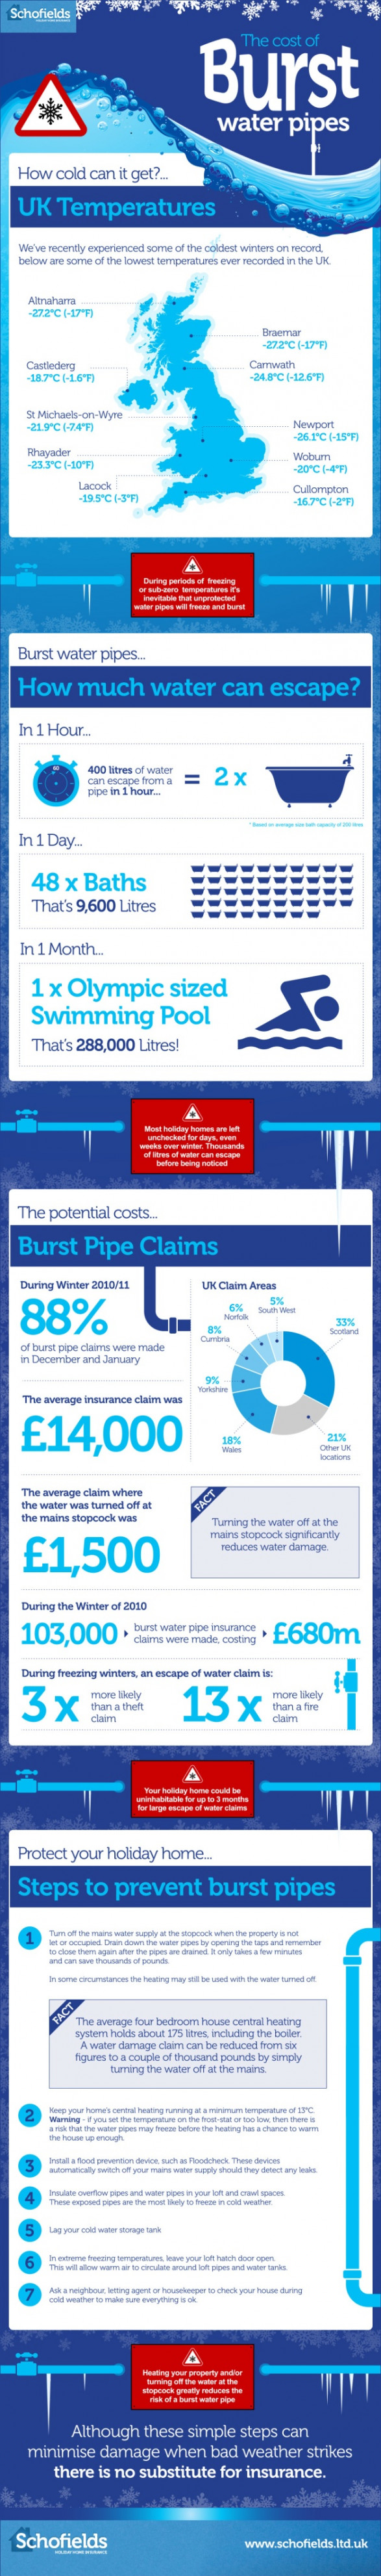 The Cost of Burst Water Pipes